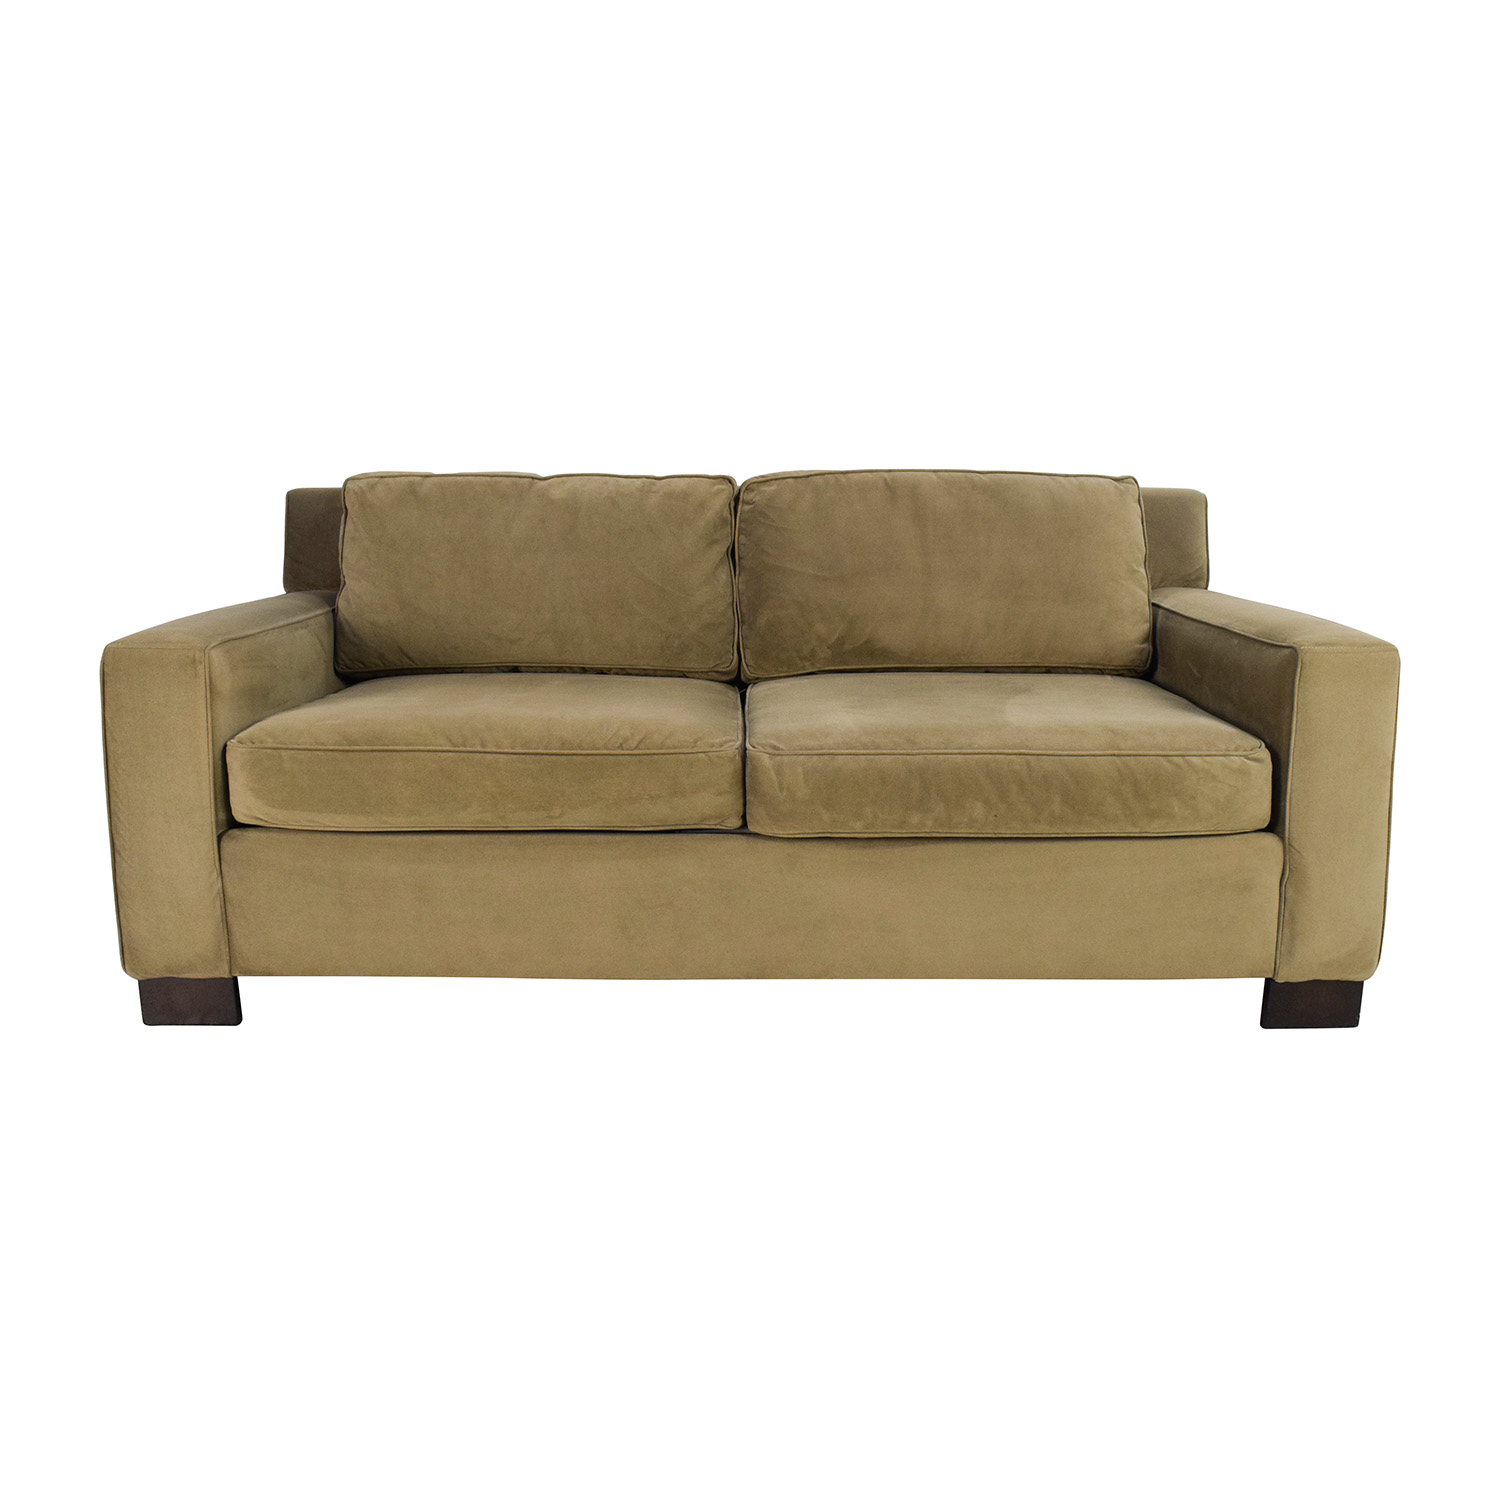 West Elm West Elm Classic Henry Beige Cushion Sofa